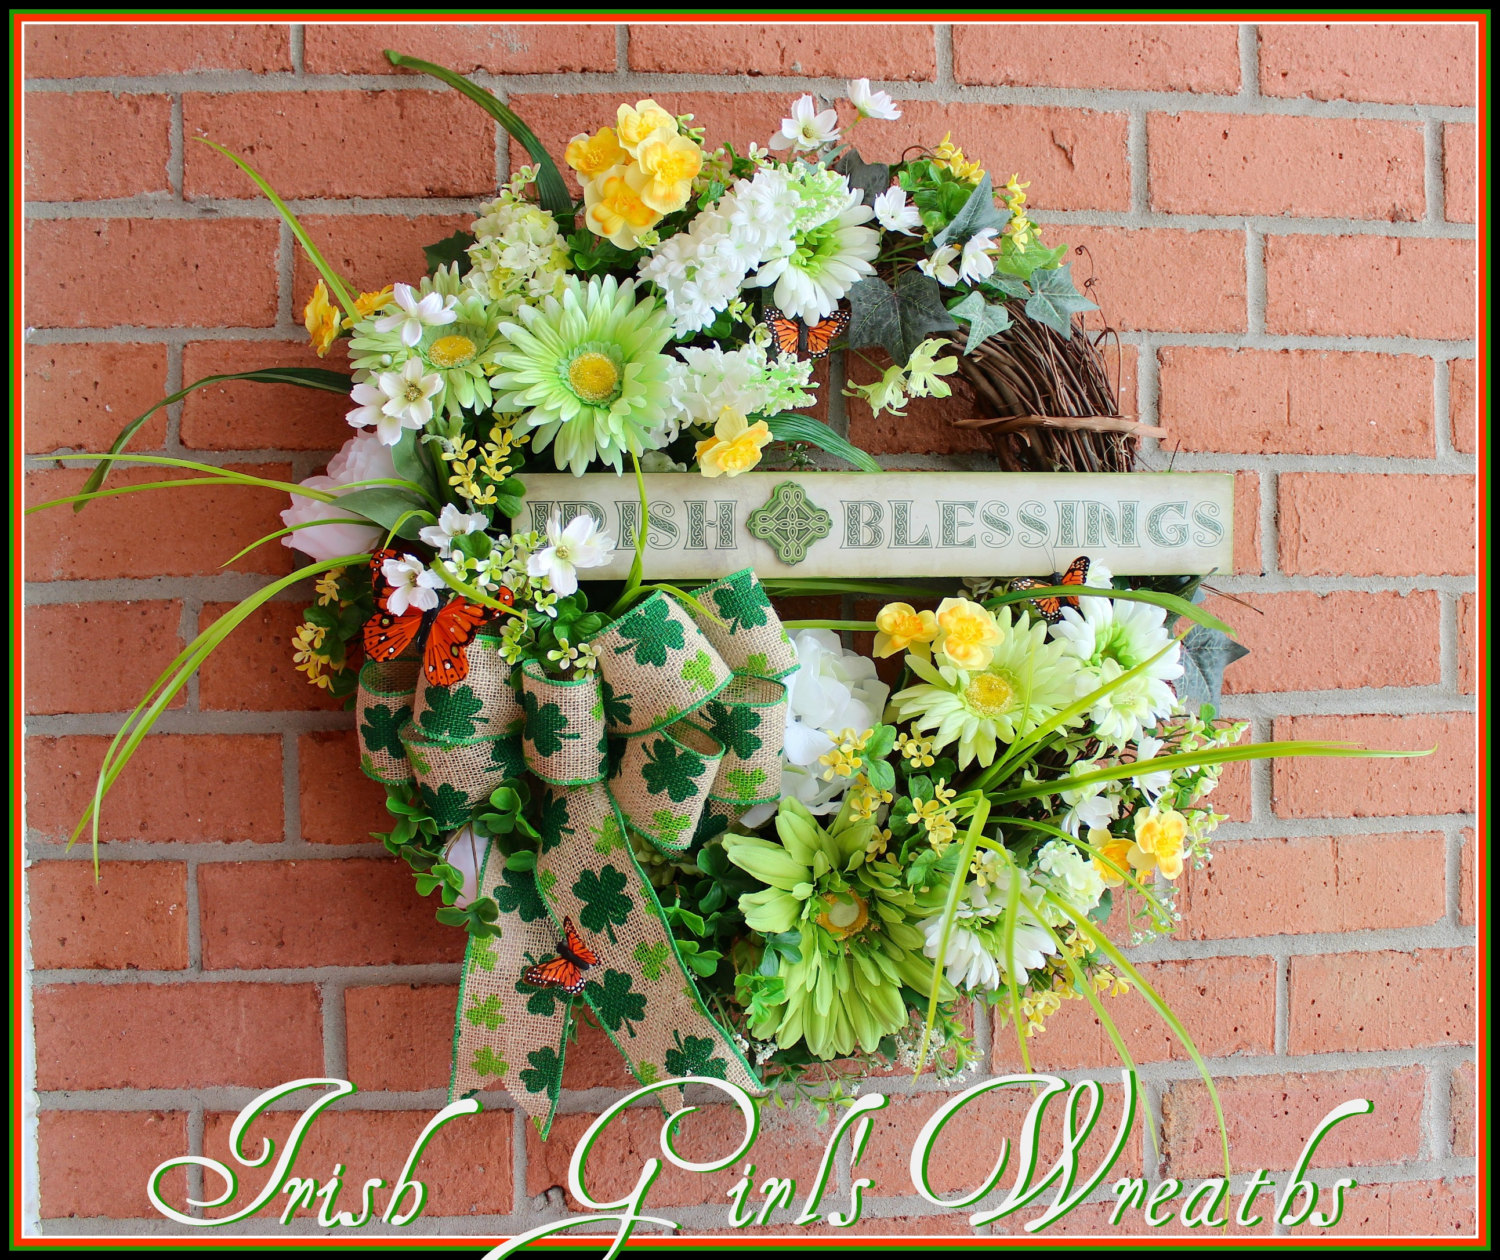 Irish Blessings Shamrocks and Daisies St.Patrick's Day Wreath, Spring Wreath, Hydrangea, Peony, clover